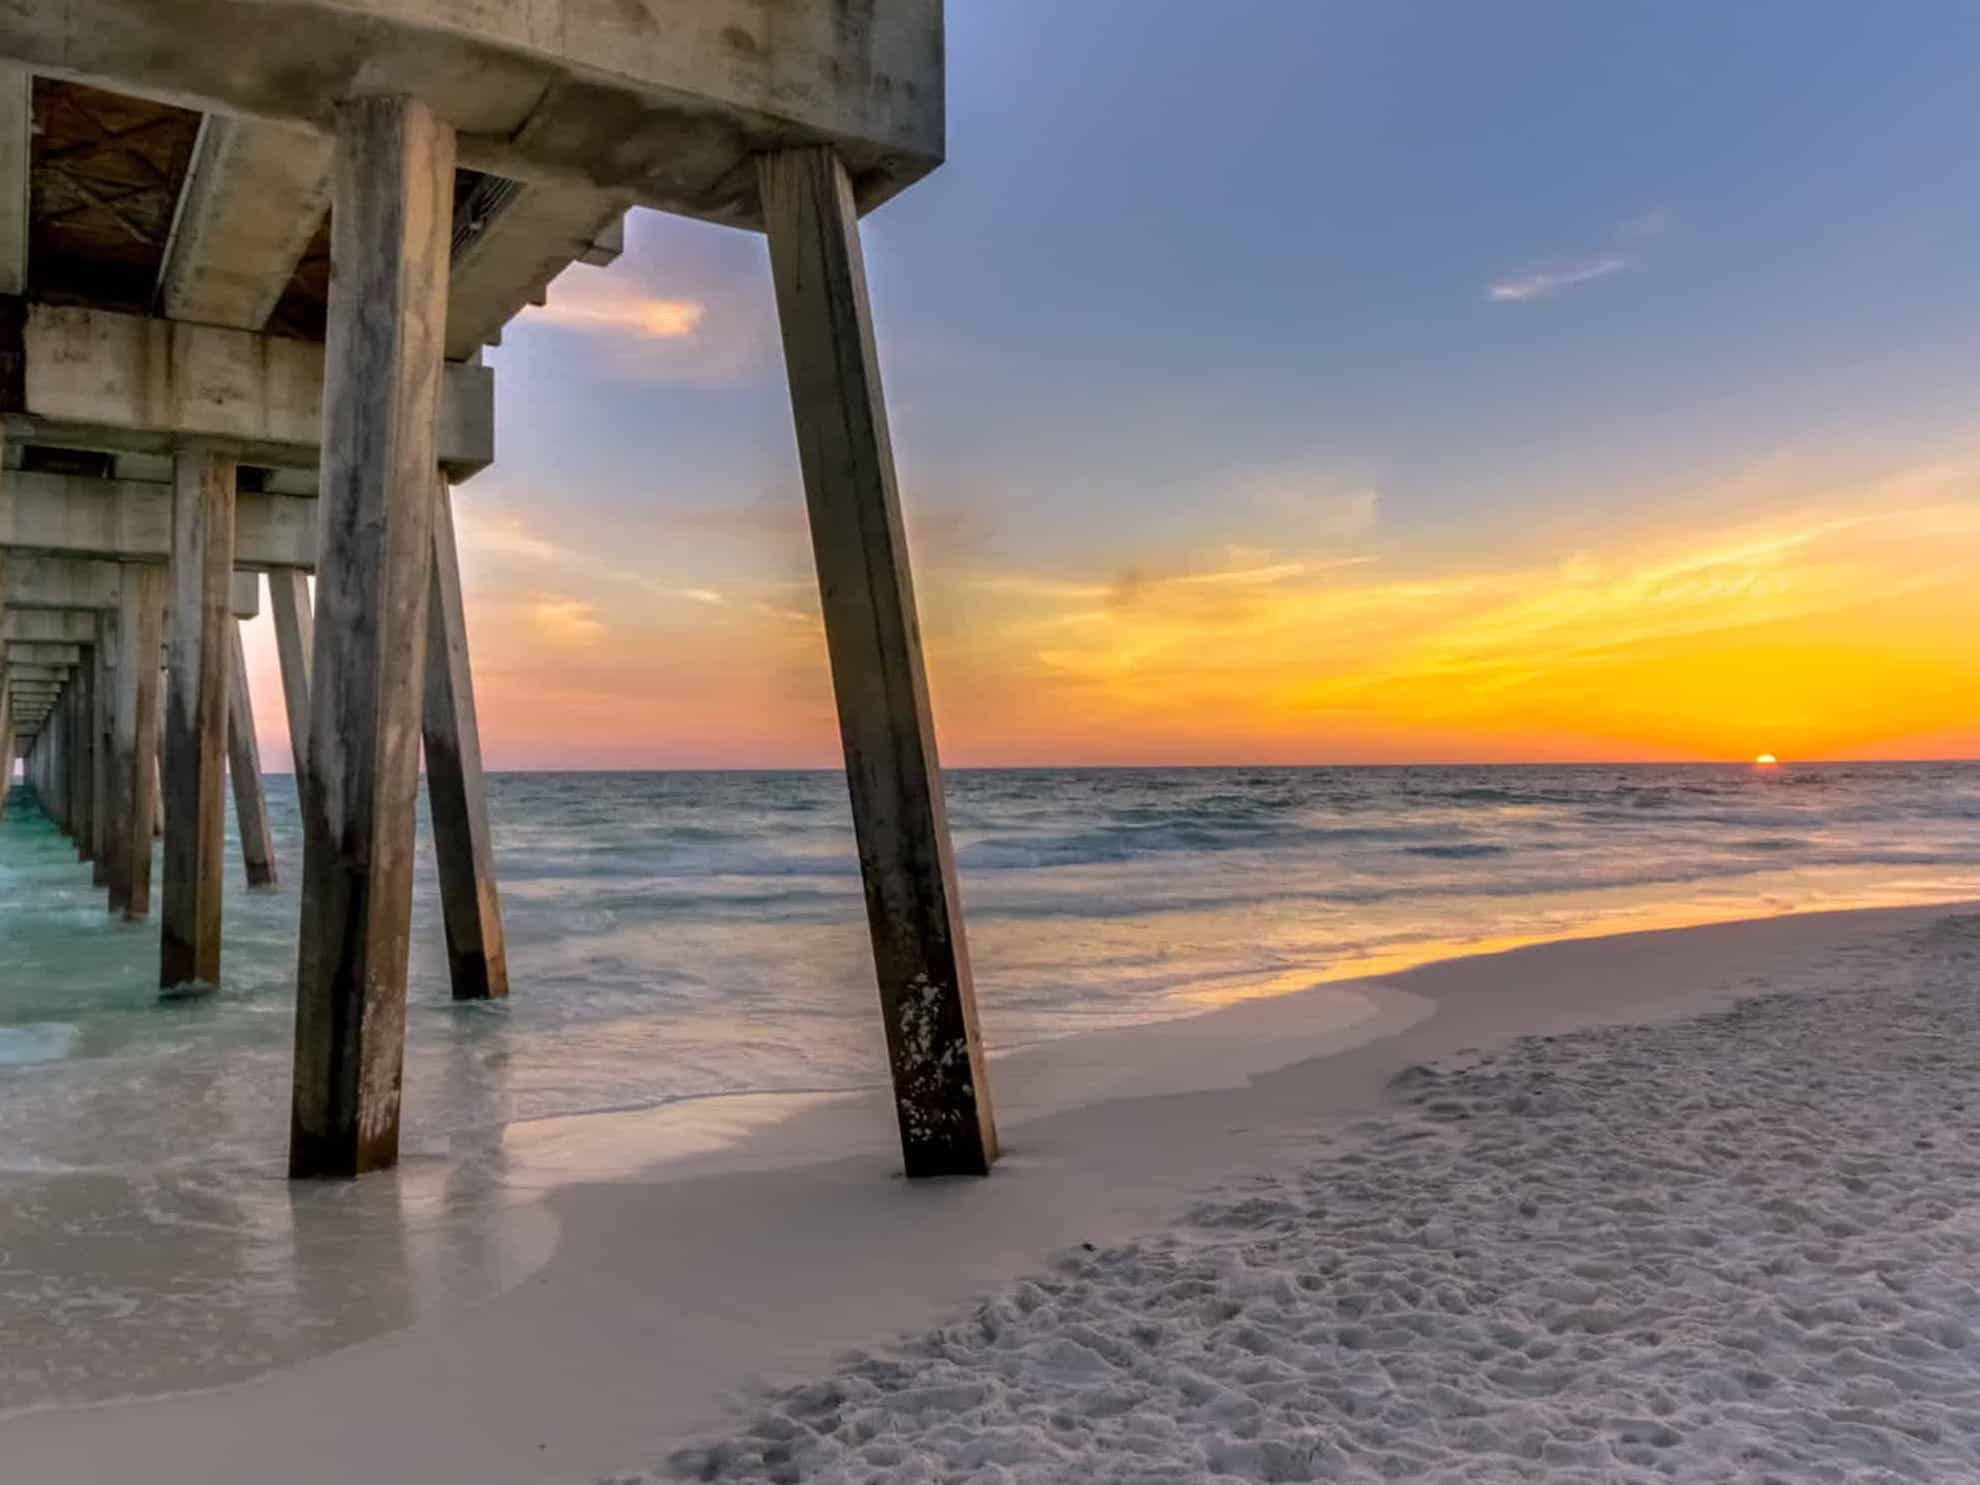 sunset view from the pier on the emerald coast in florida